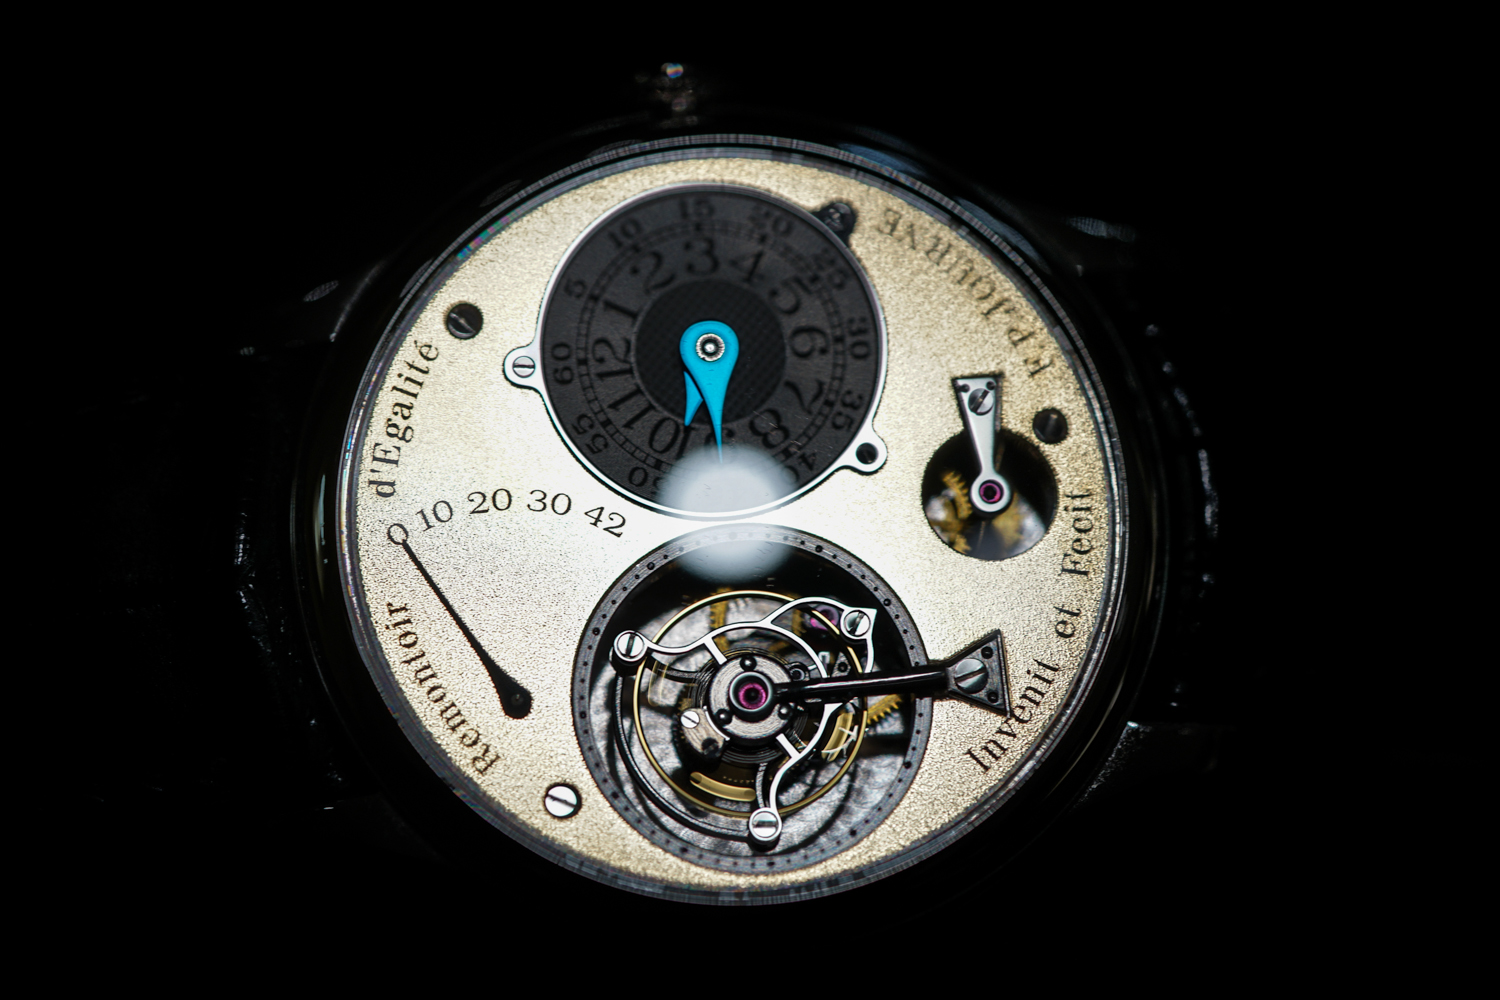 FP Journe Tourbillon Souverain Dial Gold Frosted-8.jpg